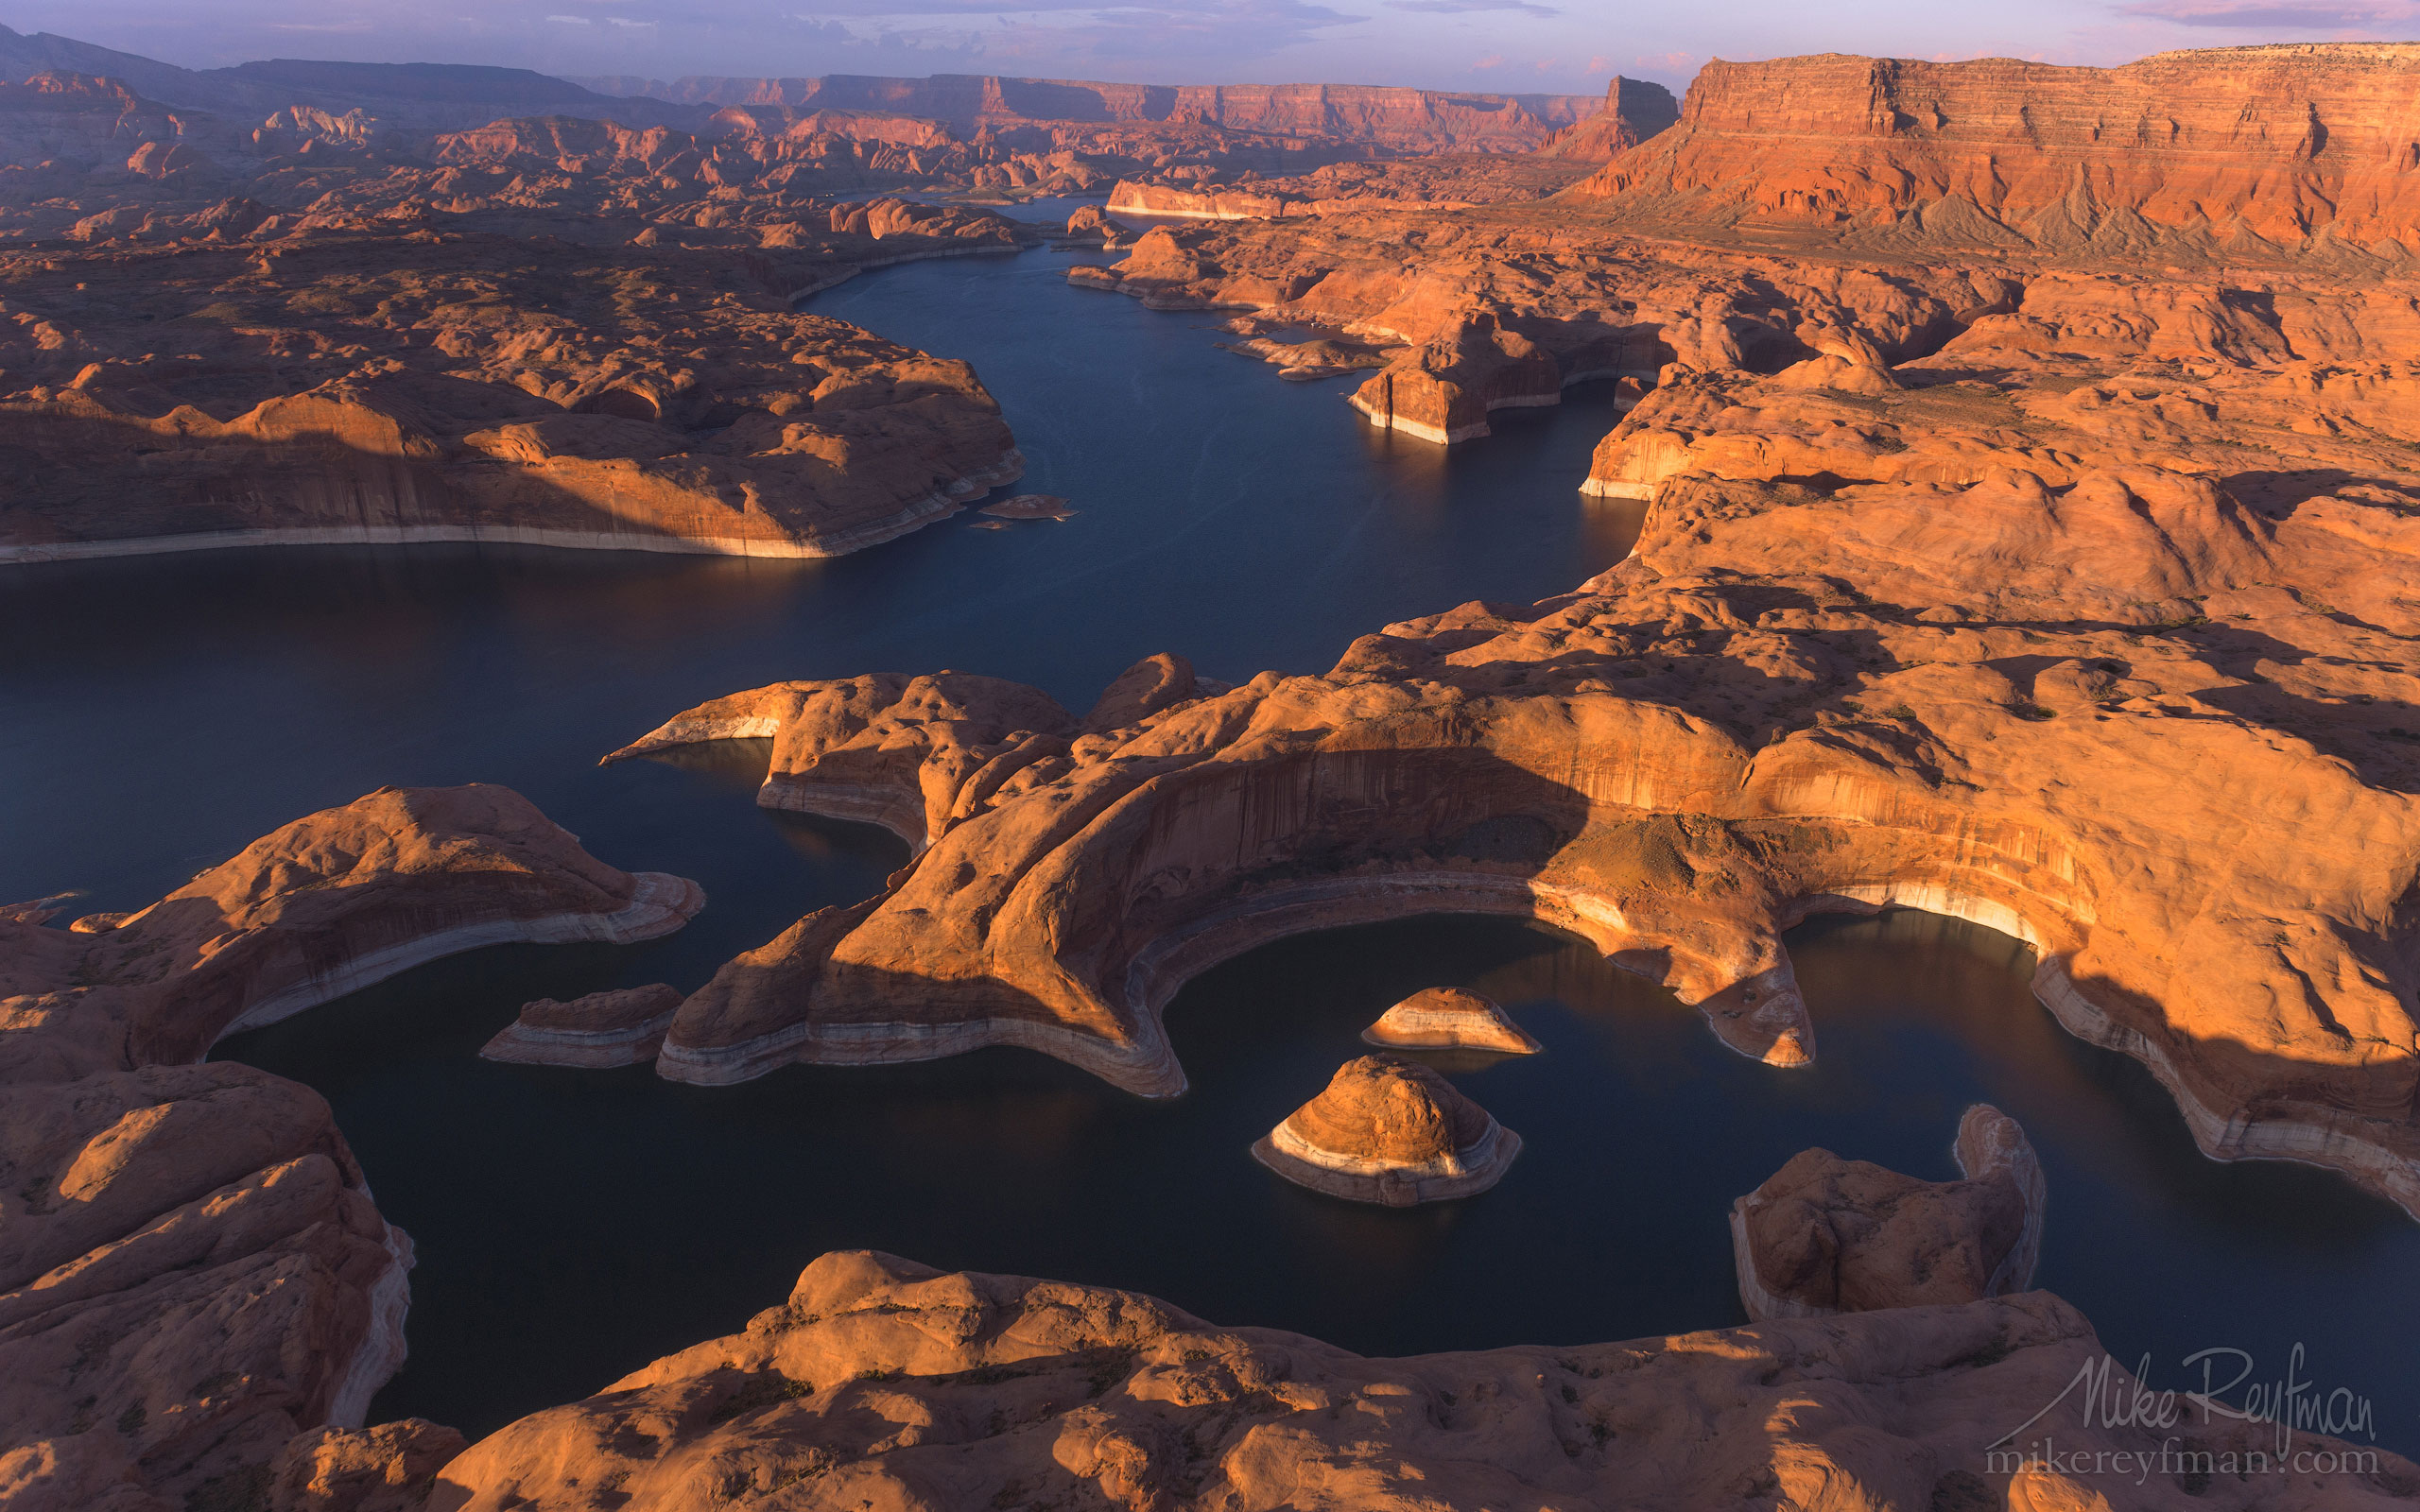 Reflection Canyon. Colorado River, Lake Powell, Glen Canyon NRA. Uta/Arizona, USA. Aerial 100-LP3_O3X5420.jpg - Lake Powell, Glen Canyon NAR. Colorado and Sun Juan Rivers. Utah/Arizona, USA  - Mike Reyfman Photography